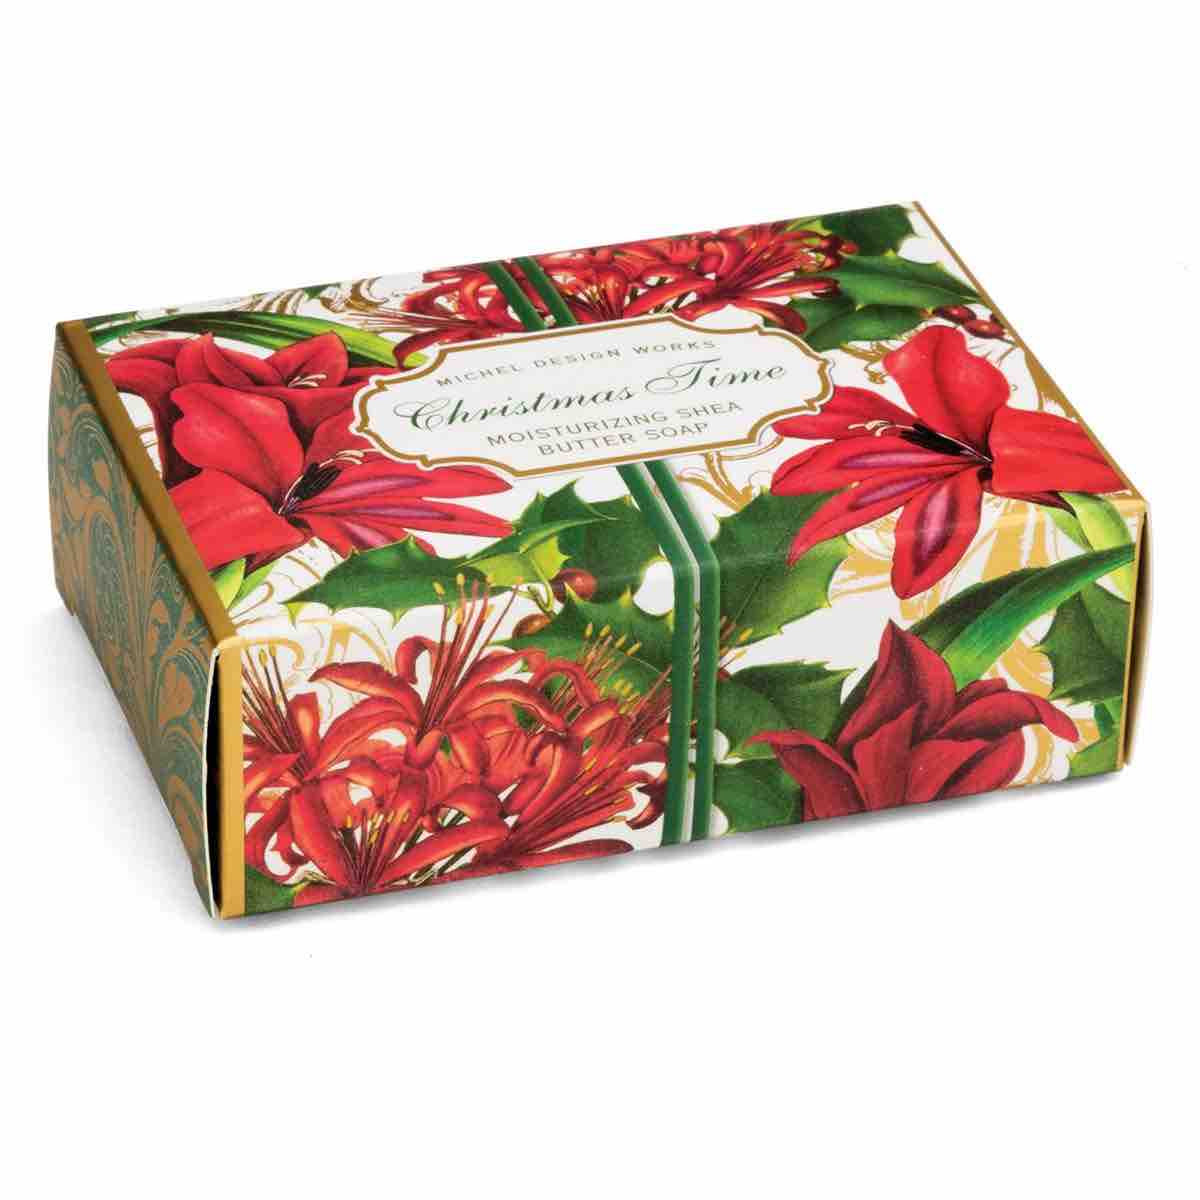 Michel Design Works Boxed Soap Bar Christmas Time Wish Kitchen